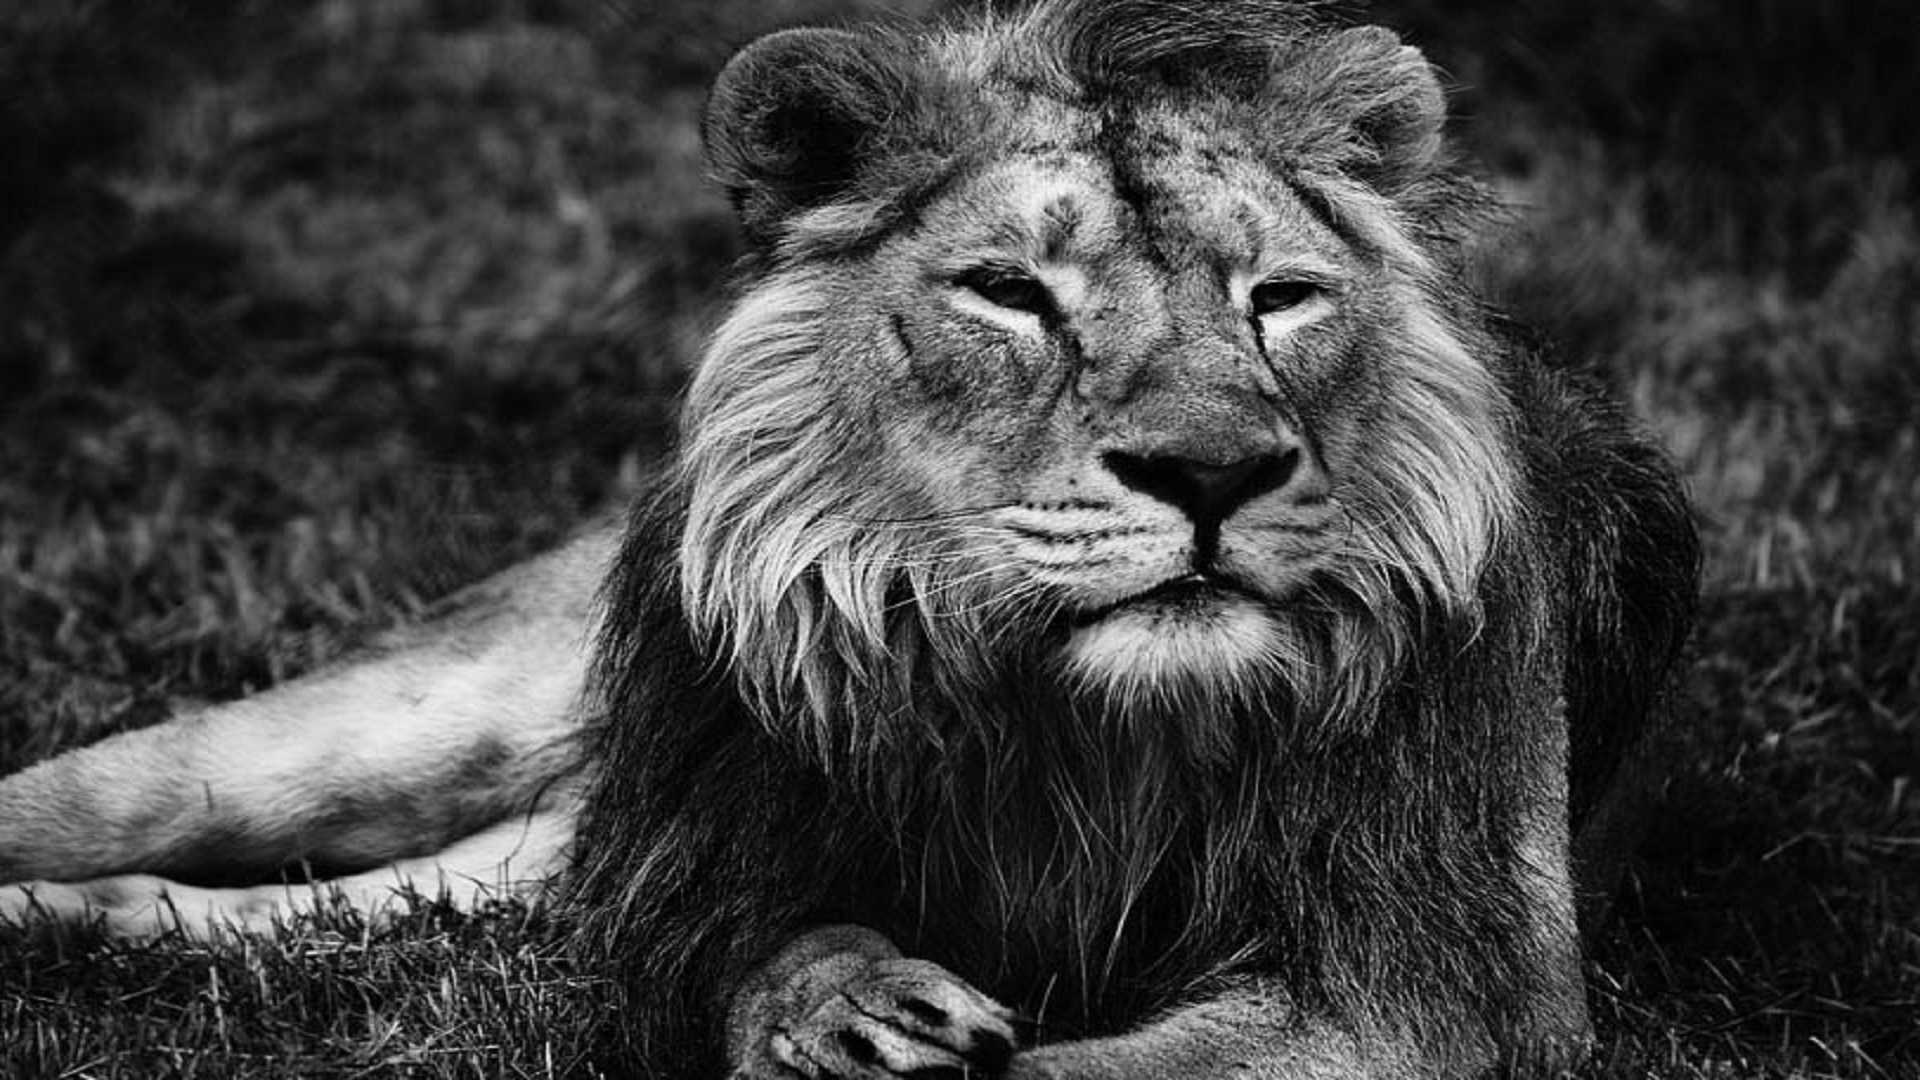 Lion Black And White Wallpaper Hd